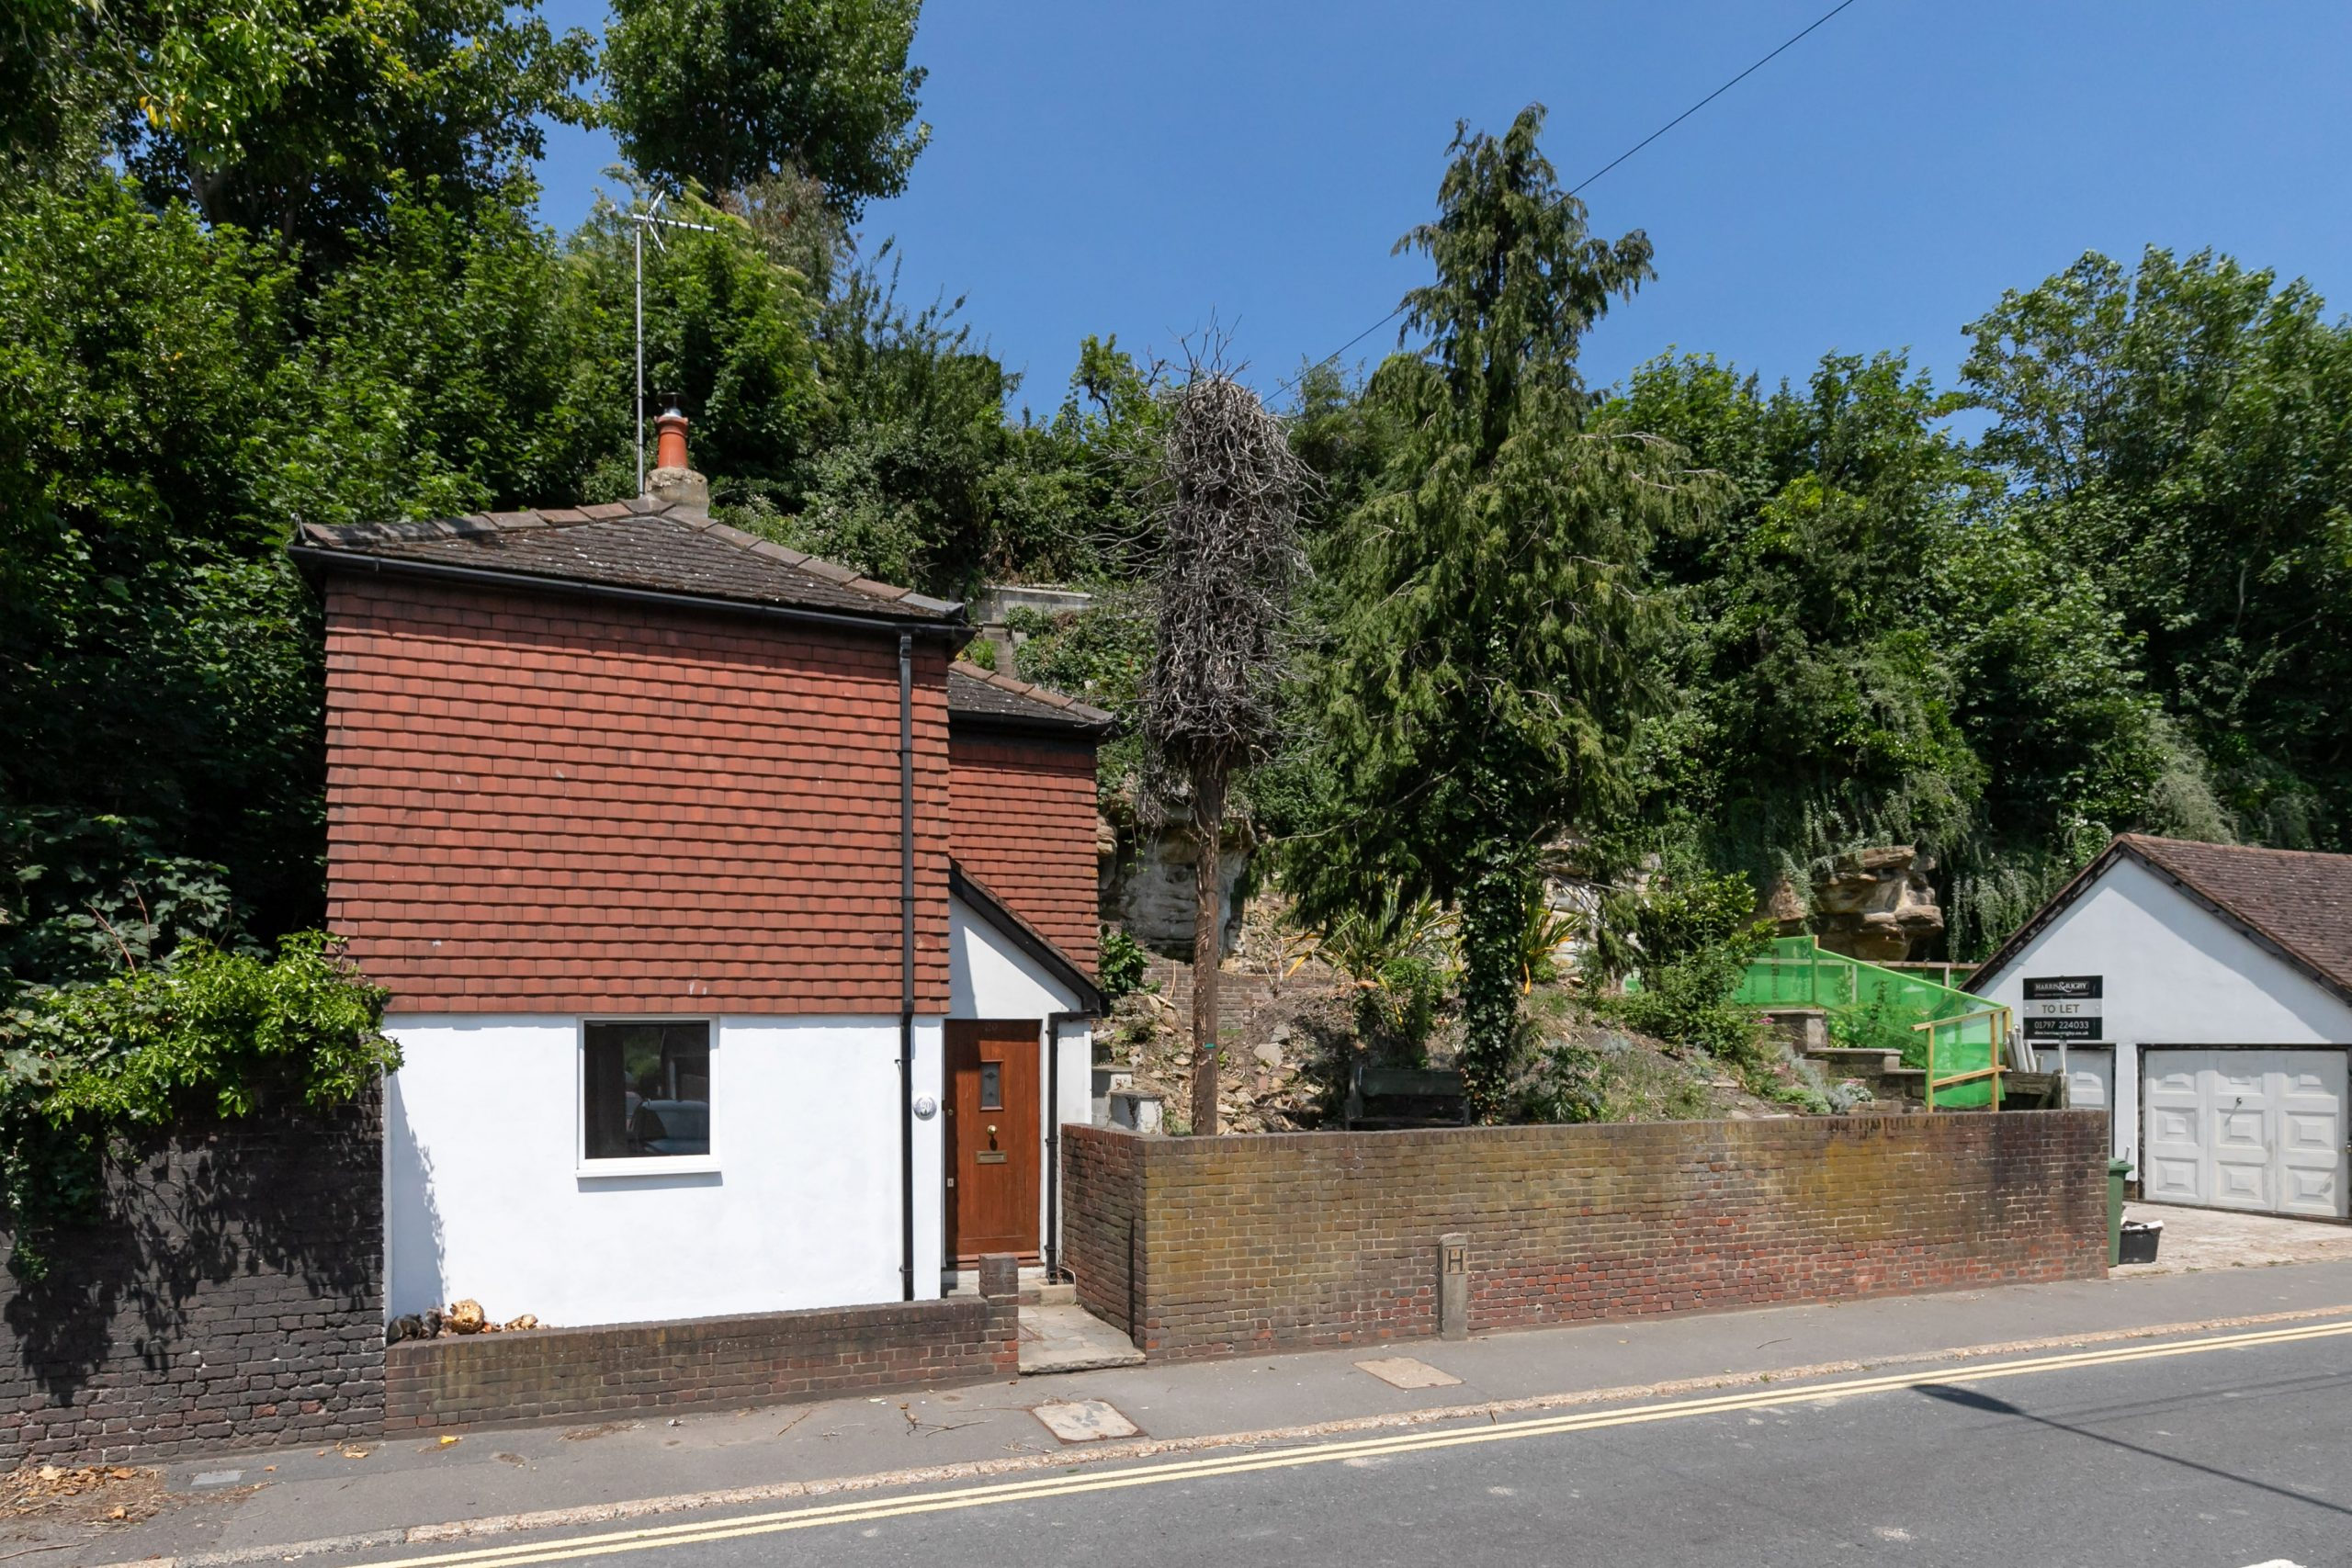 Rye – 2 Bedroom Detached House